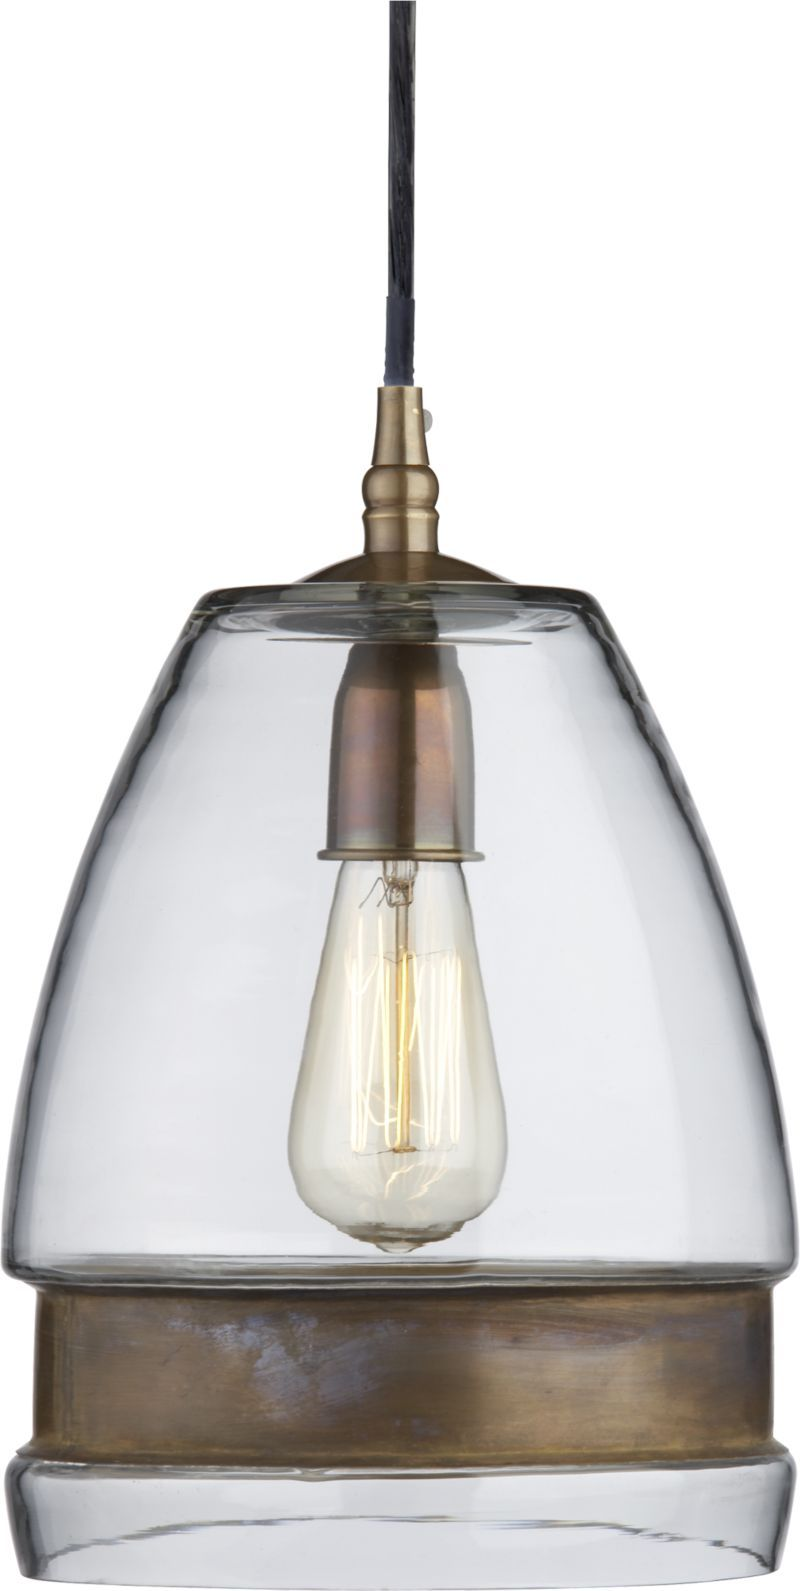 Morela Glass Pendant Lamp With Images Glass Pendant Light